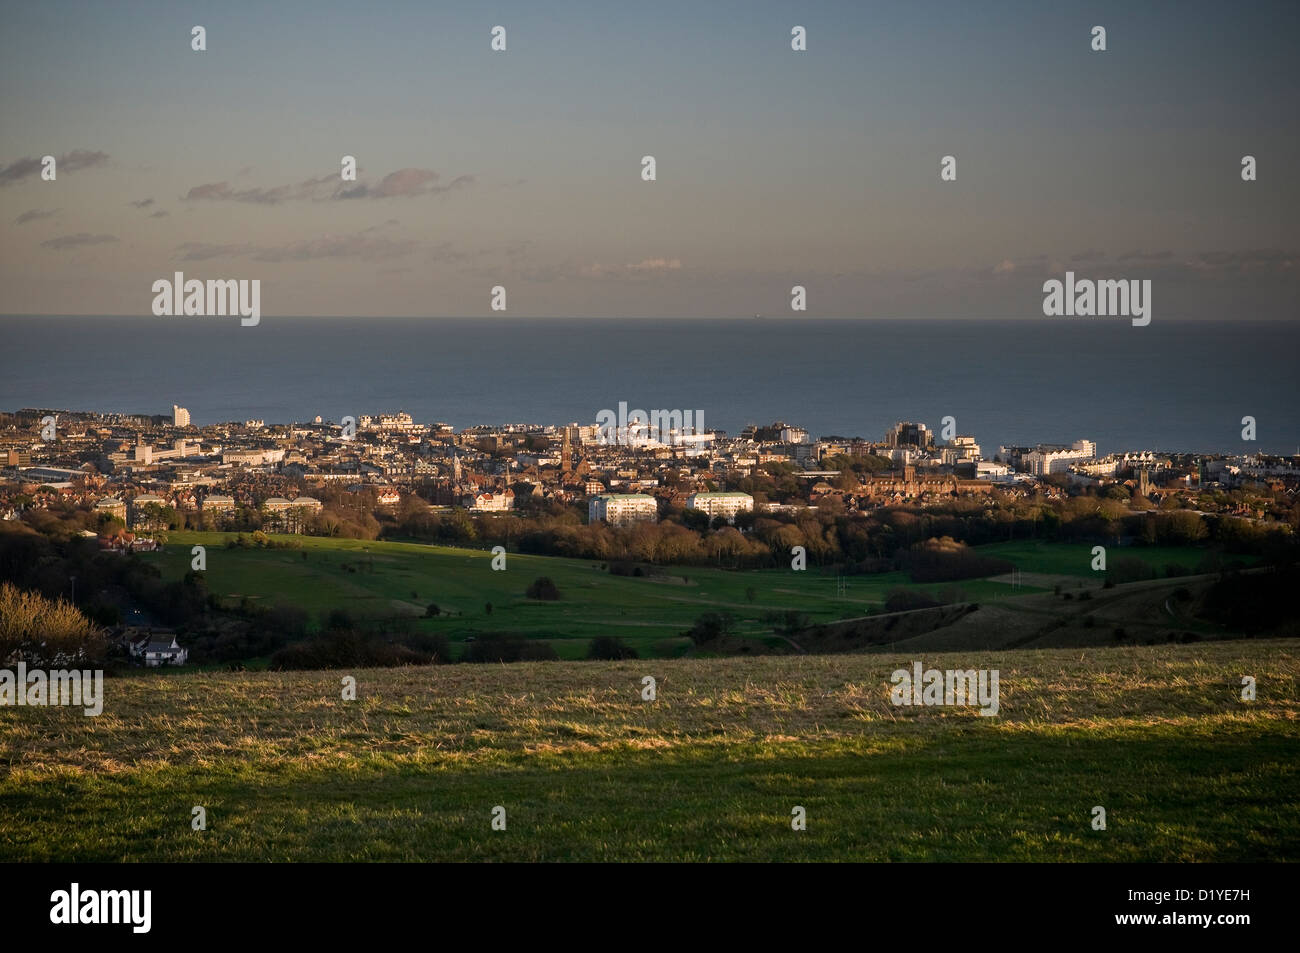 The South Downs Way overlooking the seaside resort of Eastbourne, East Sussex, UK - Stock Image